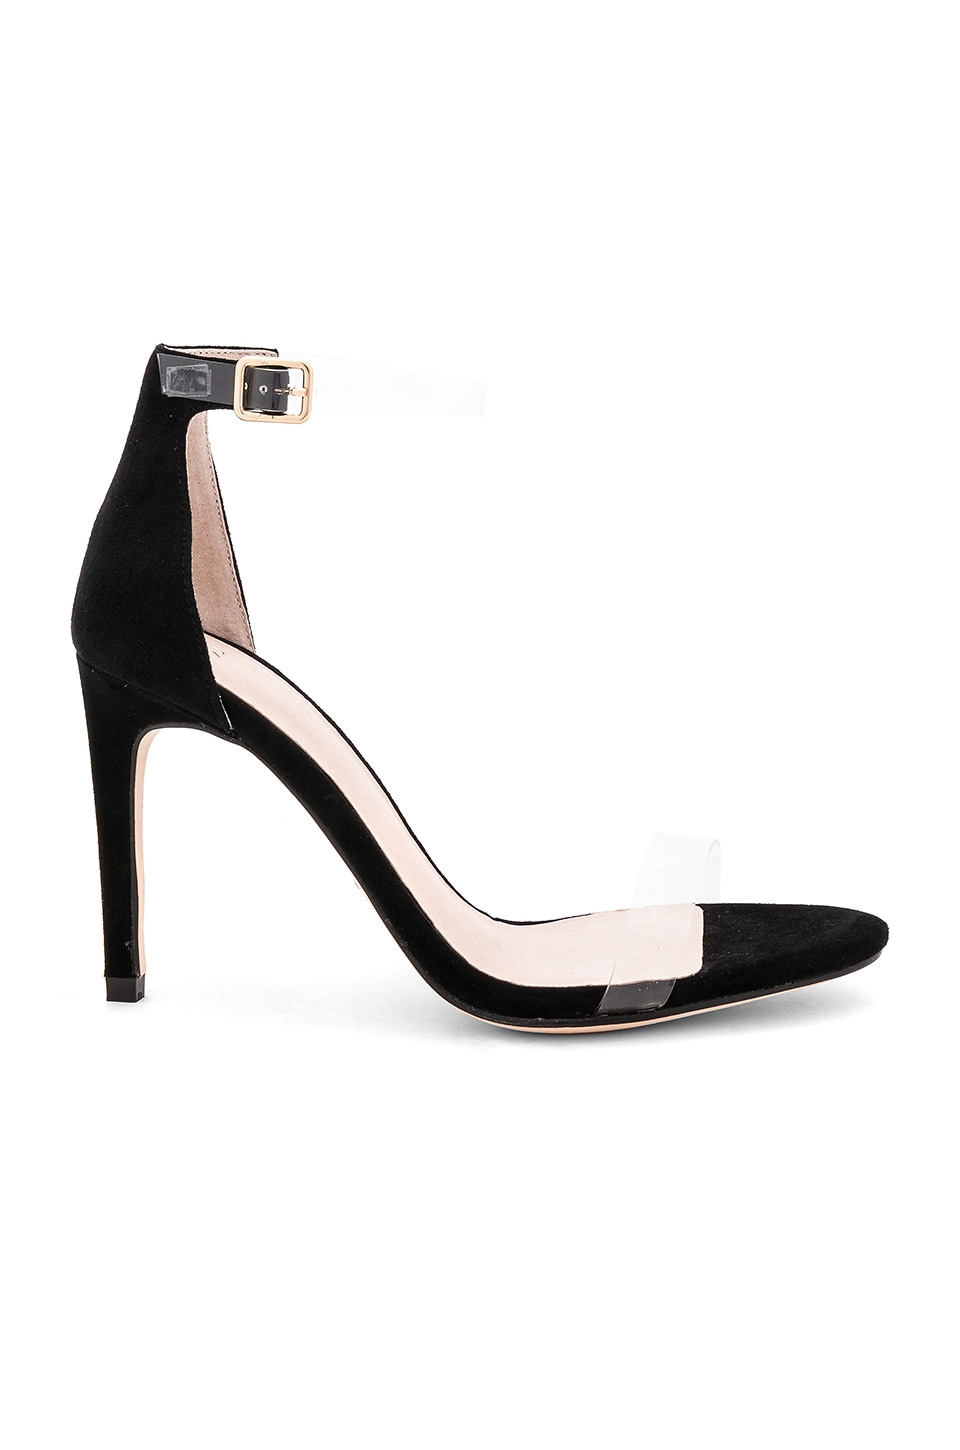 RAYE x REVOLVE Jameson Heel in Black